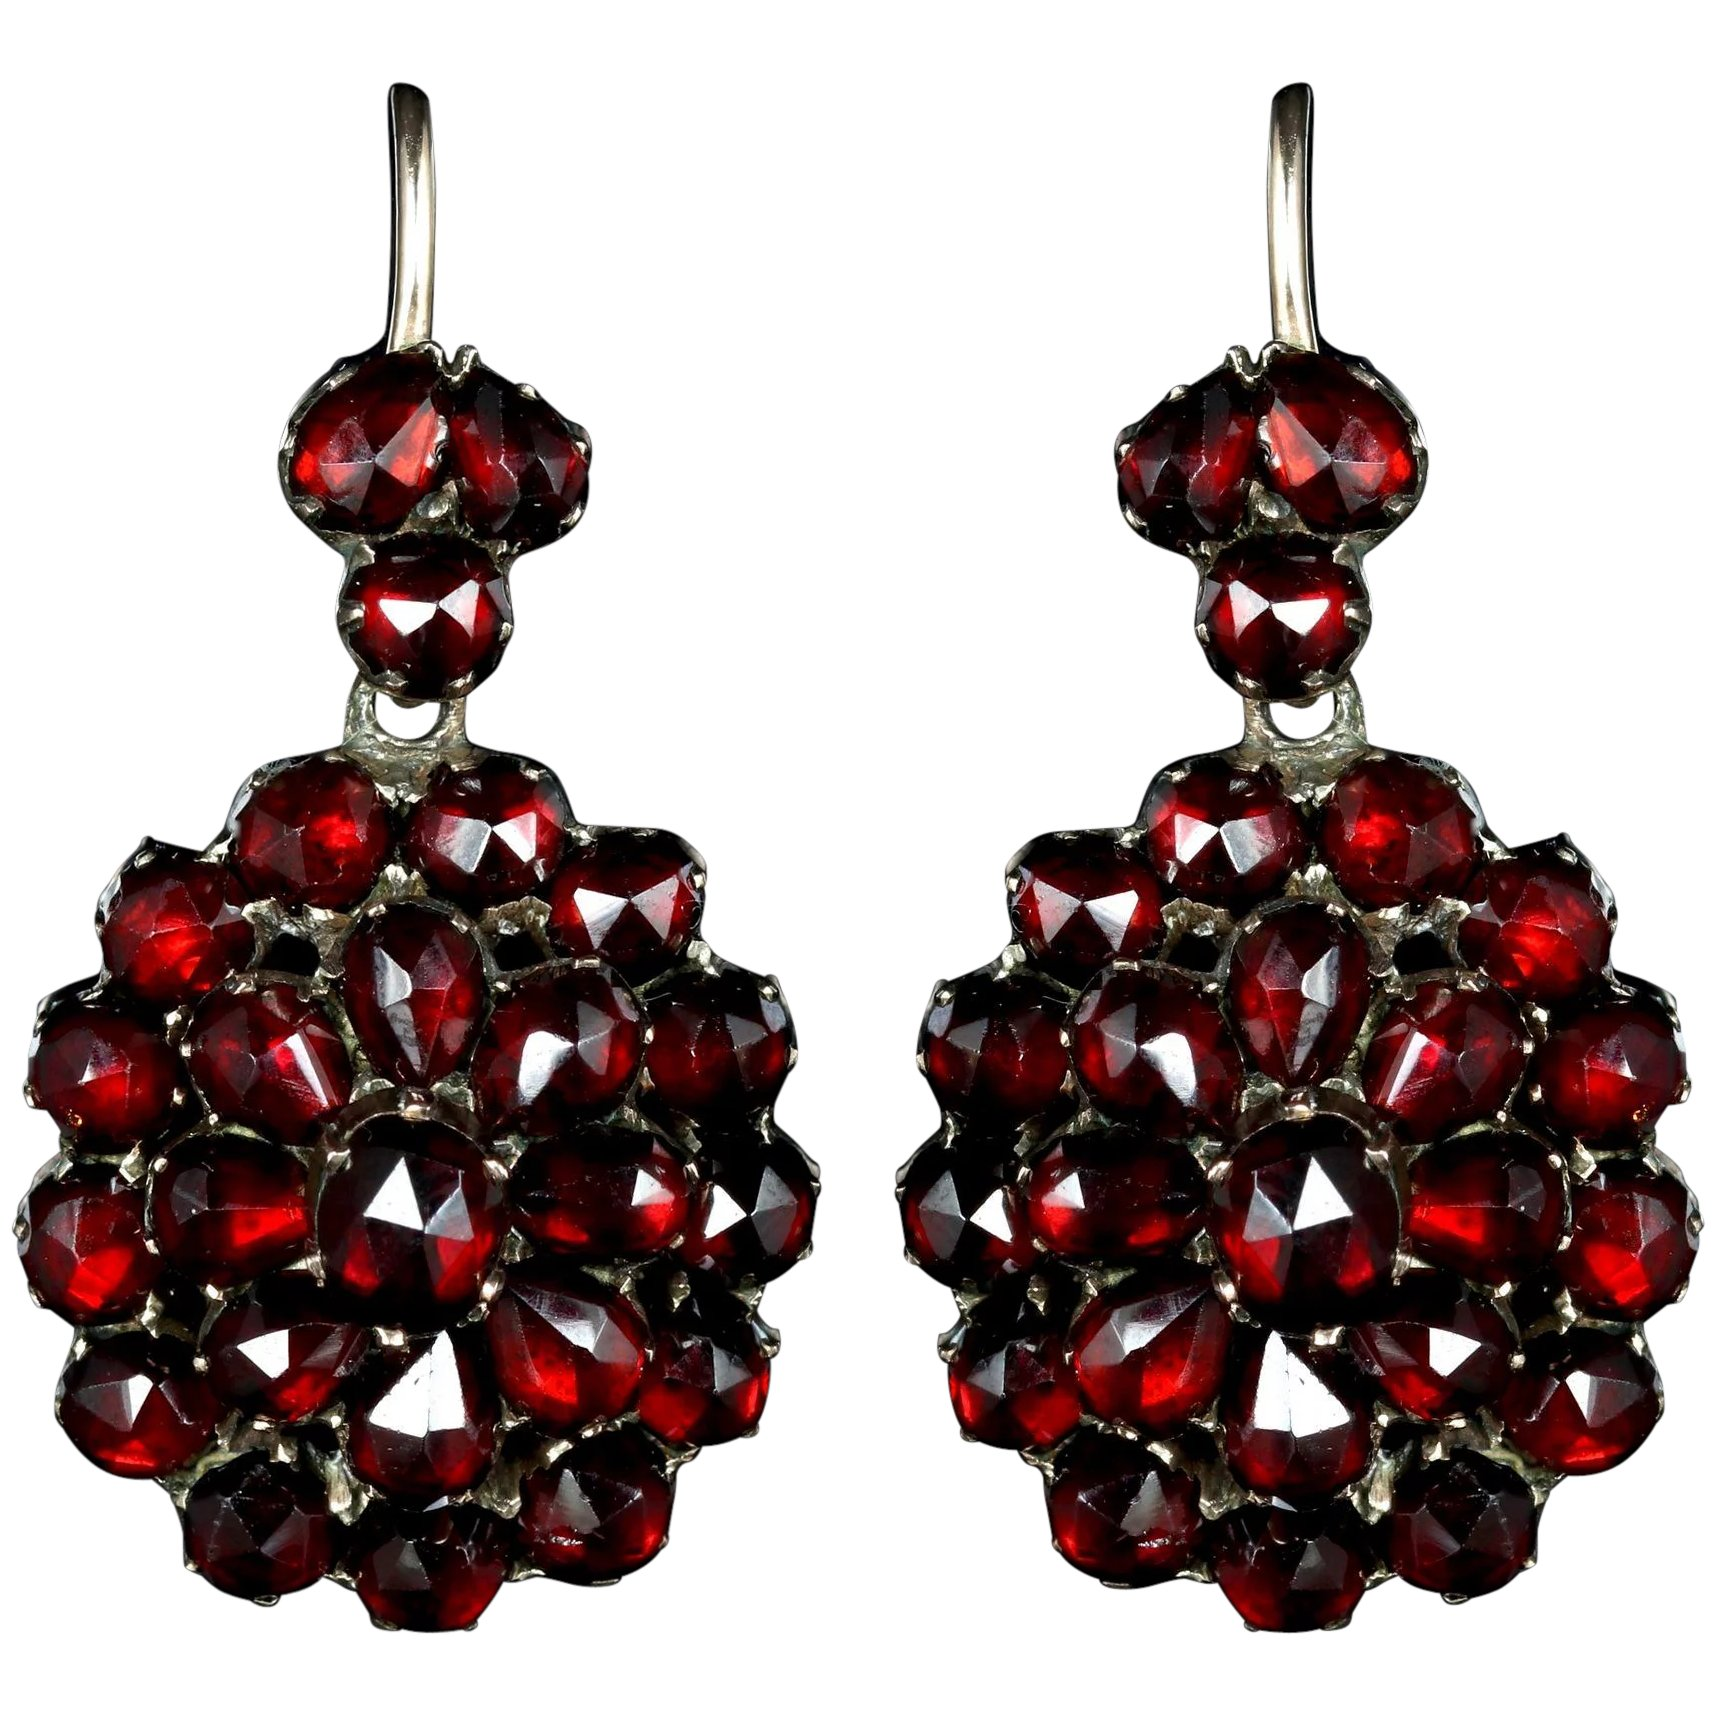 Antique Victorian Bohemian Garnet Earrings Gold Circa 1880 Click To Expand